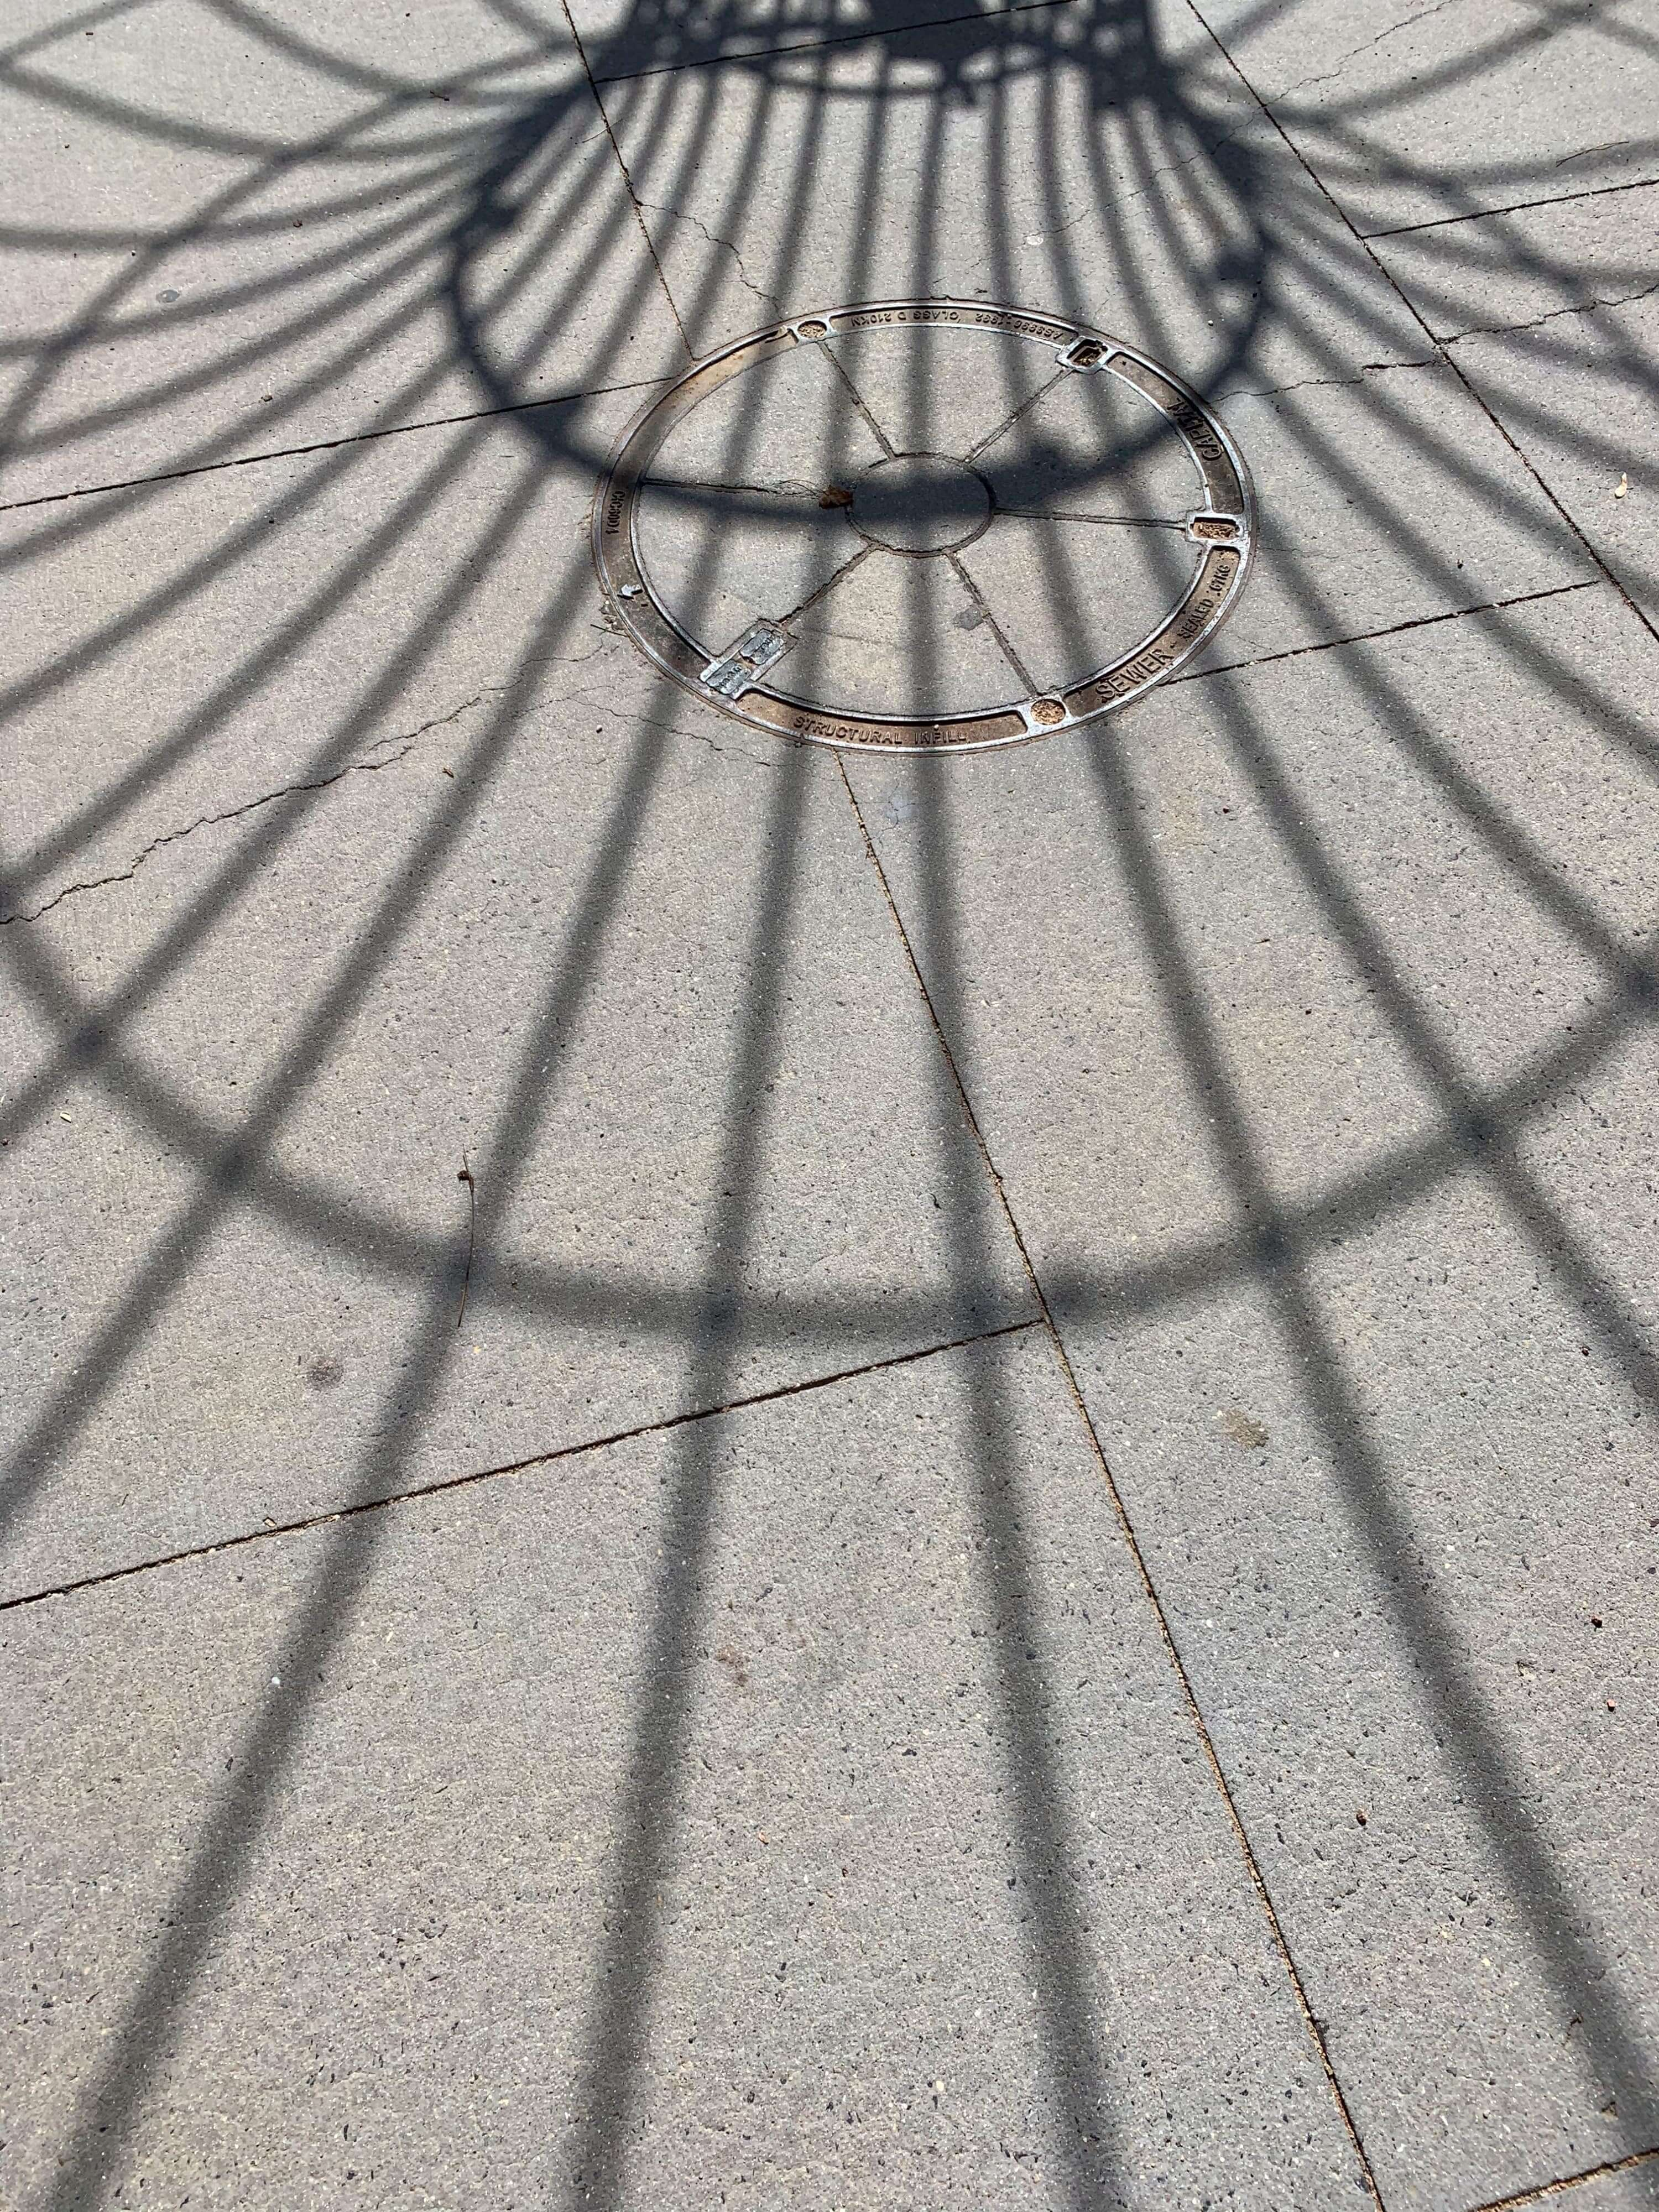 shadow of a circular city structure on the ground - with a circle in the middle and lines extending through it